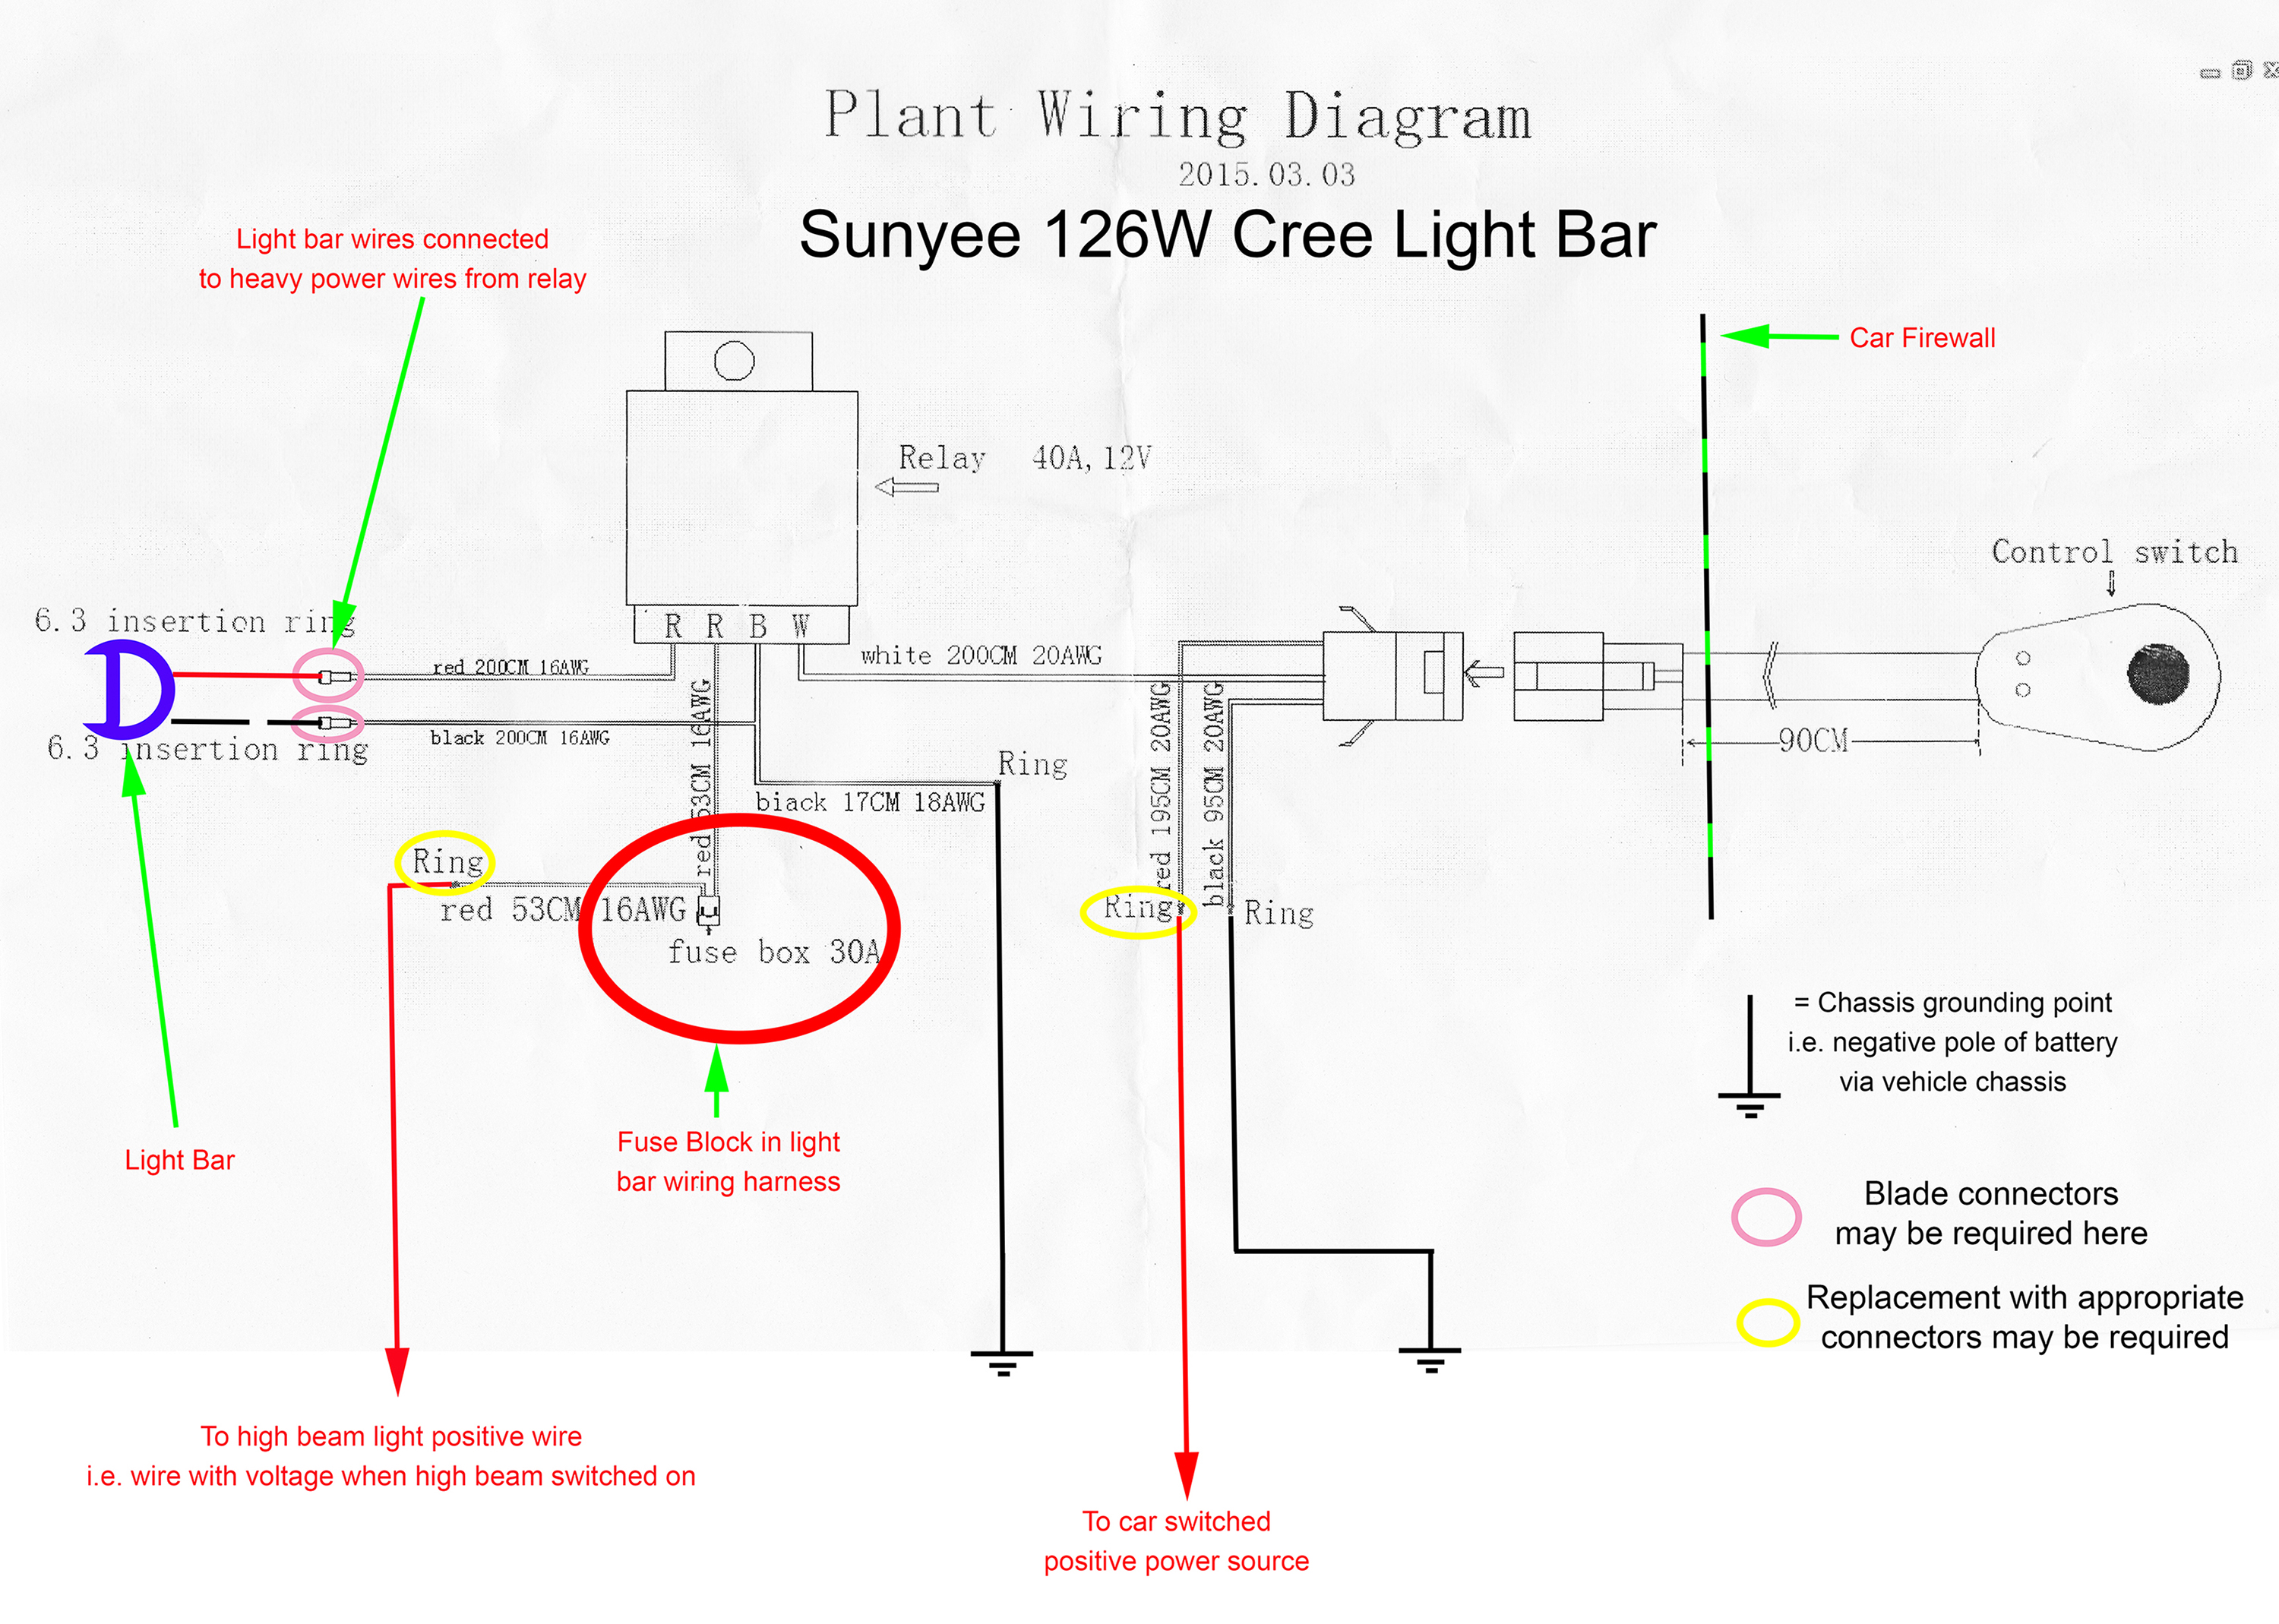 Sunyee au+126W+Light+Bar+wiring+diagram+Modified 2_small?resize\\\\\\\\\\\\\\\\\\\\\\\\\\\\\\\=840%2C599 1771 iad wiring diagram 1771 ian \u2022 edmiracle co 1771 ife wiring diagram at readyjetset.co